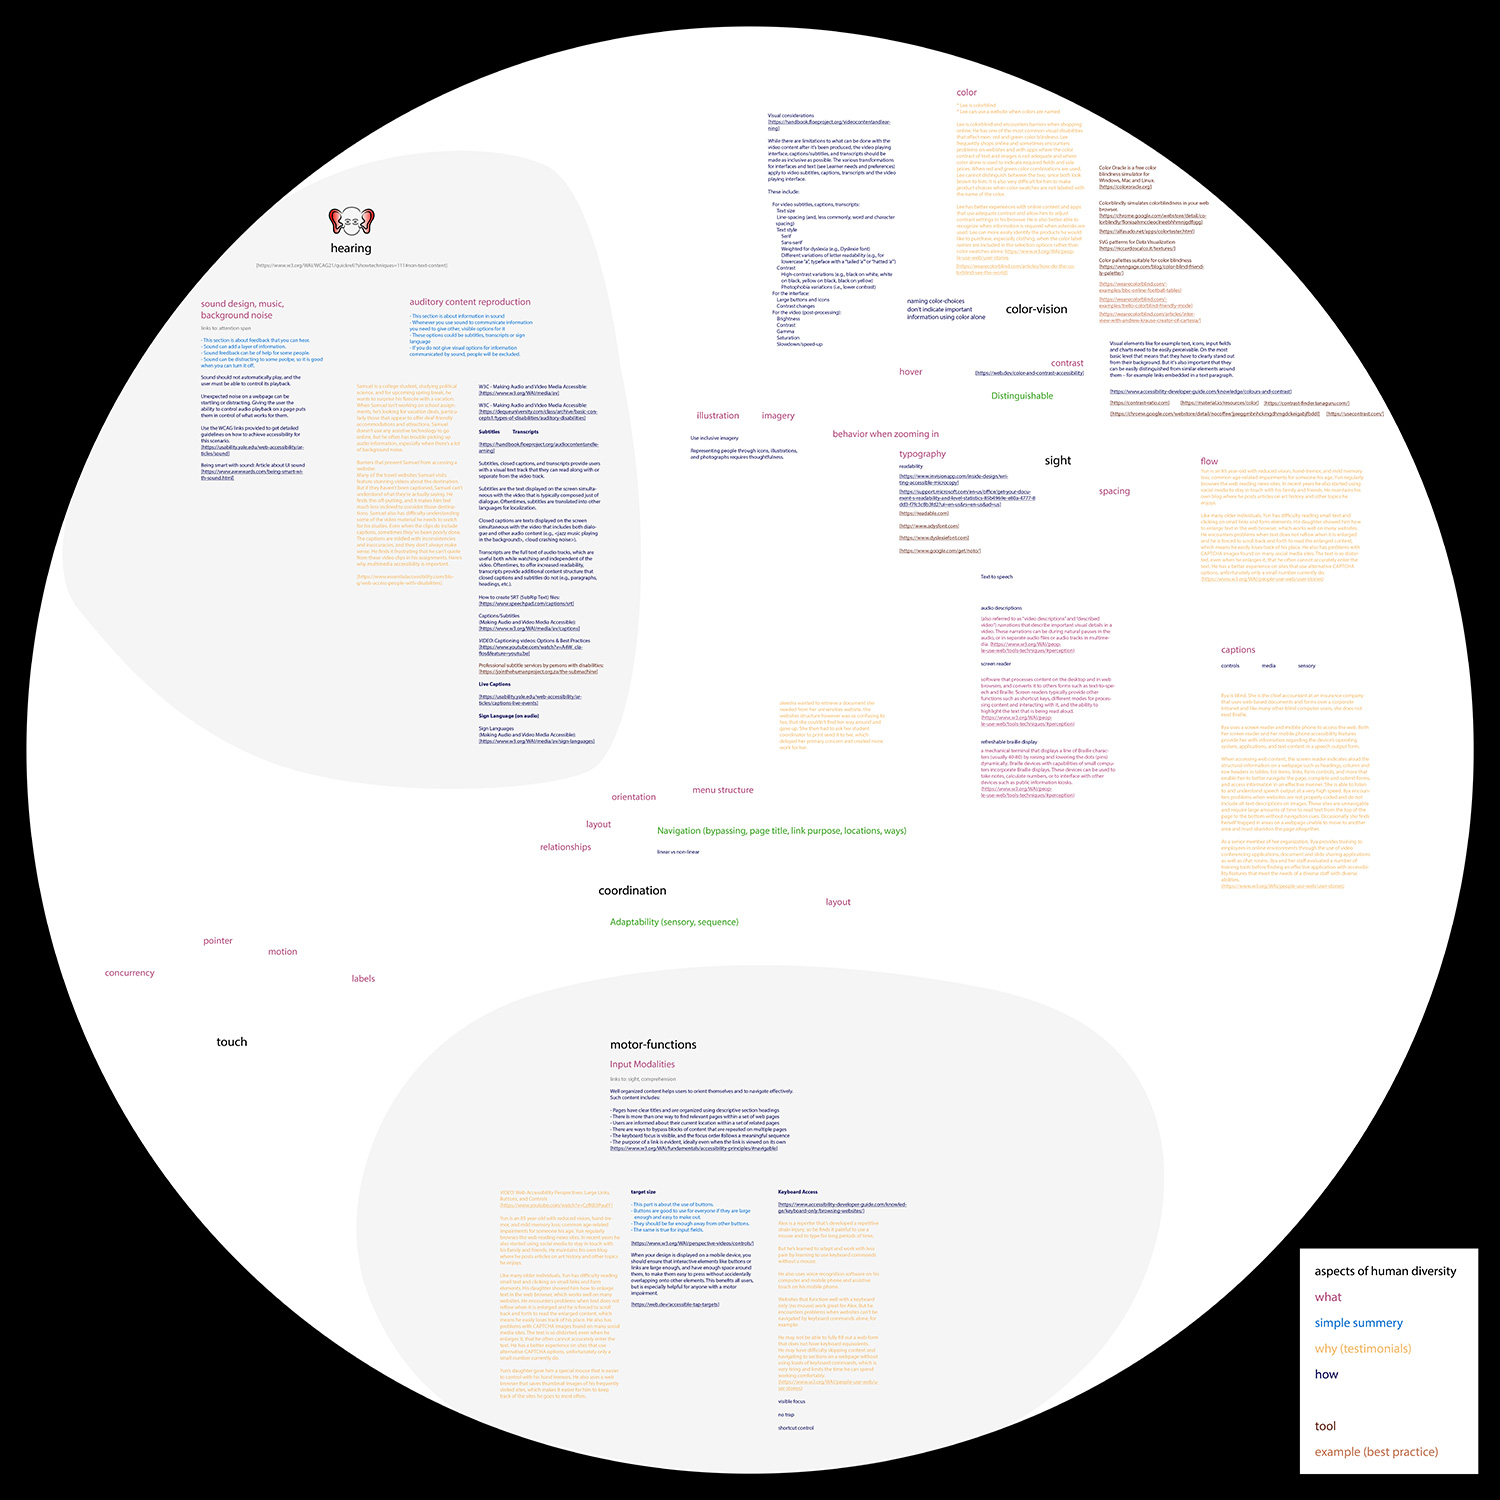 Chart in the shape of a speher shows: The established categories arranged spatially and combined with color coded subtopics and references.